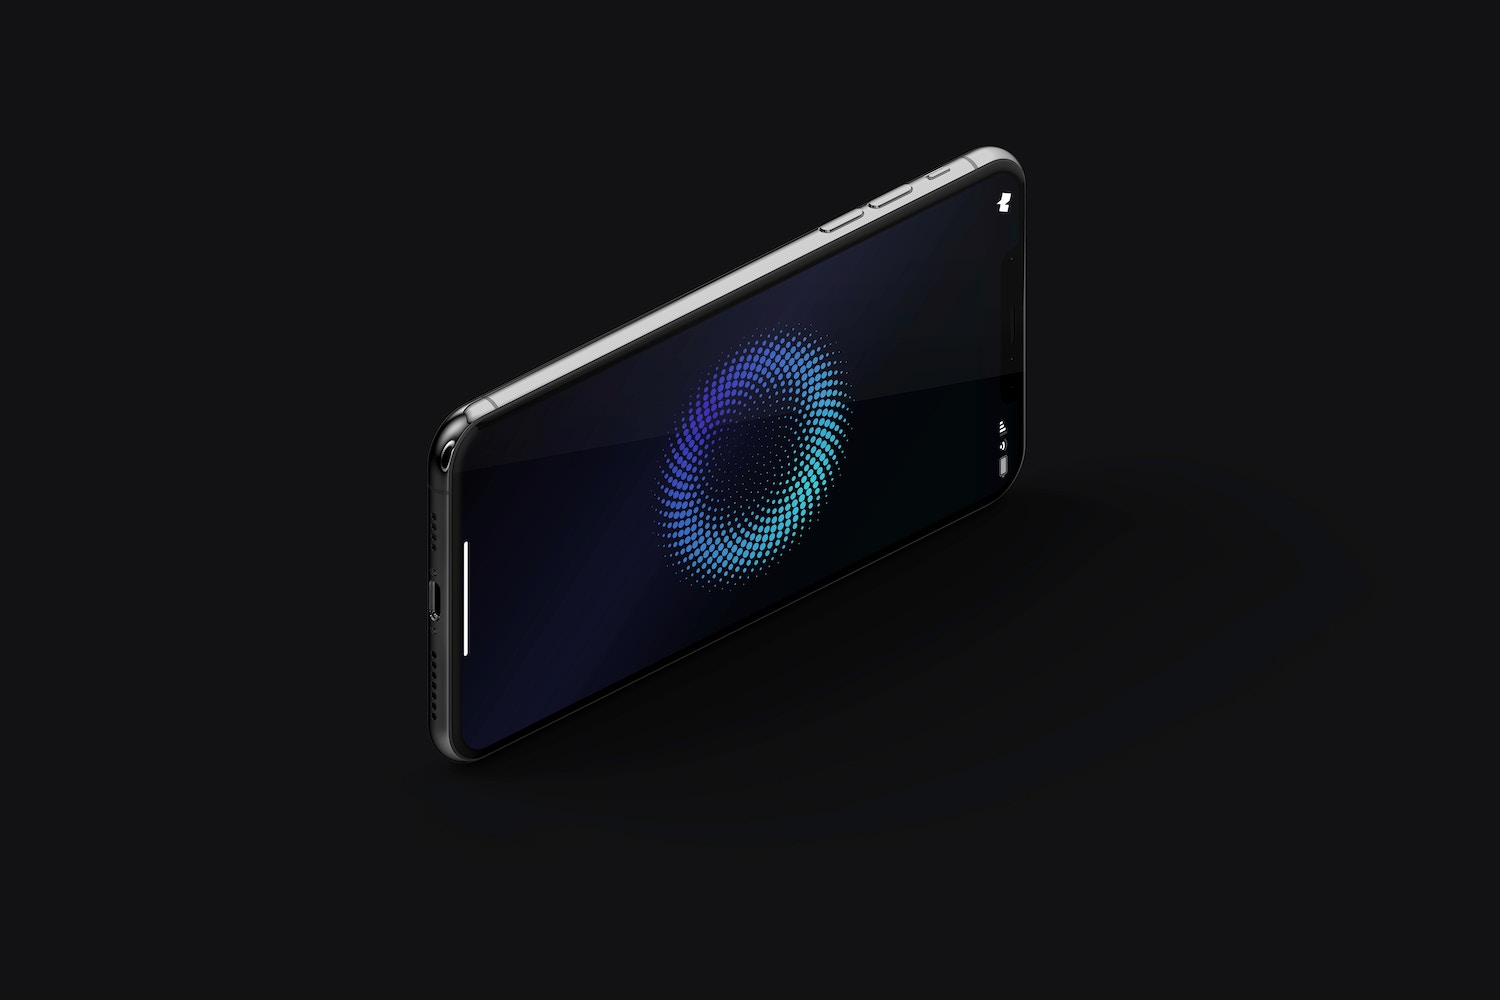 iPhone XS Max Mockup, Isometric Right View 03 (5) by Original Mockups on Original Mockups